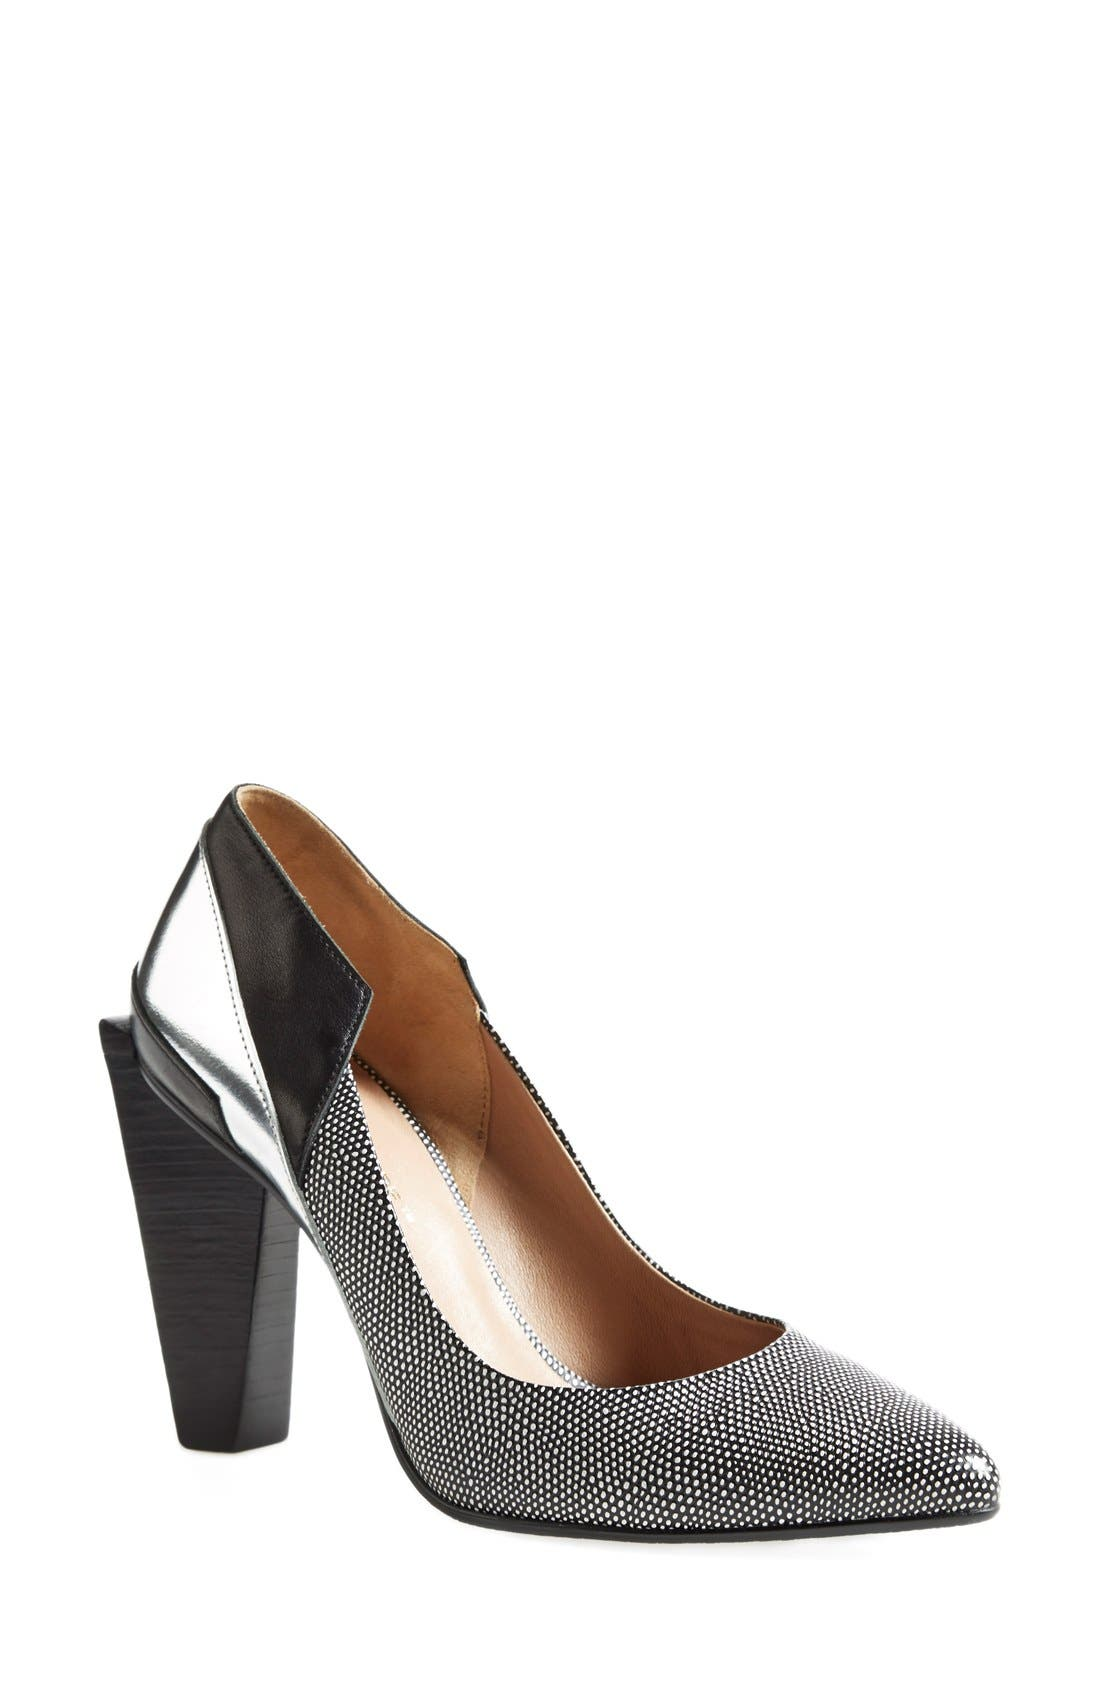 UNITED NUDE COLLECTION 'Ruby Hi' Pump, Main, color, 006